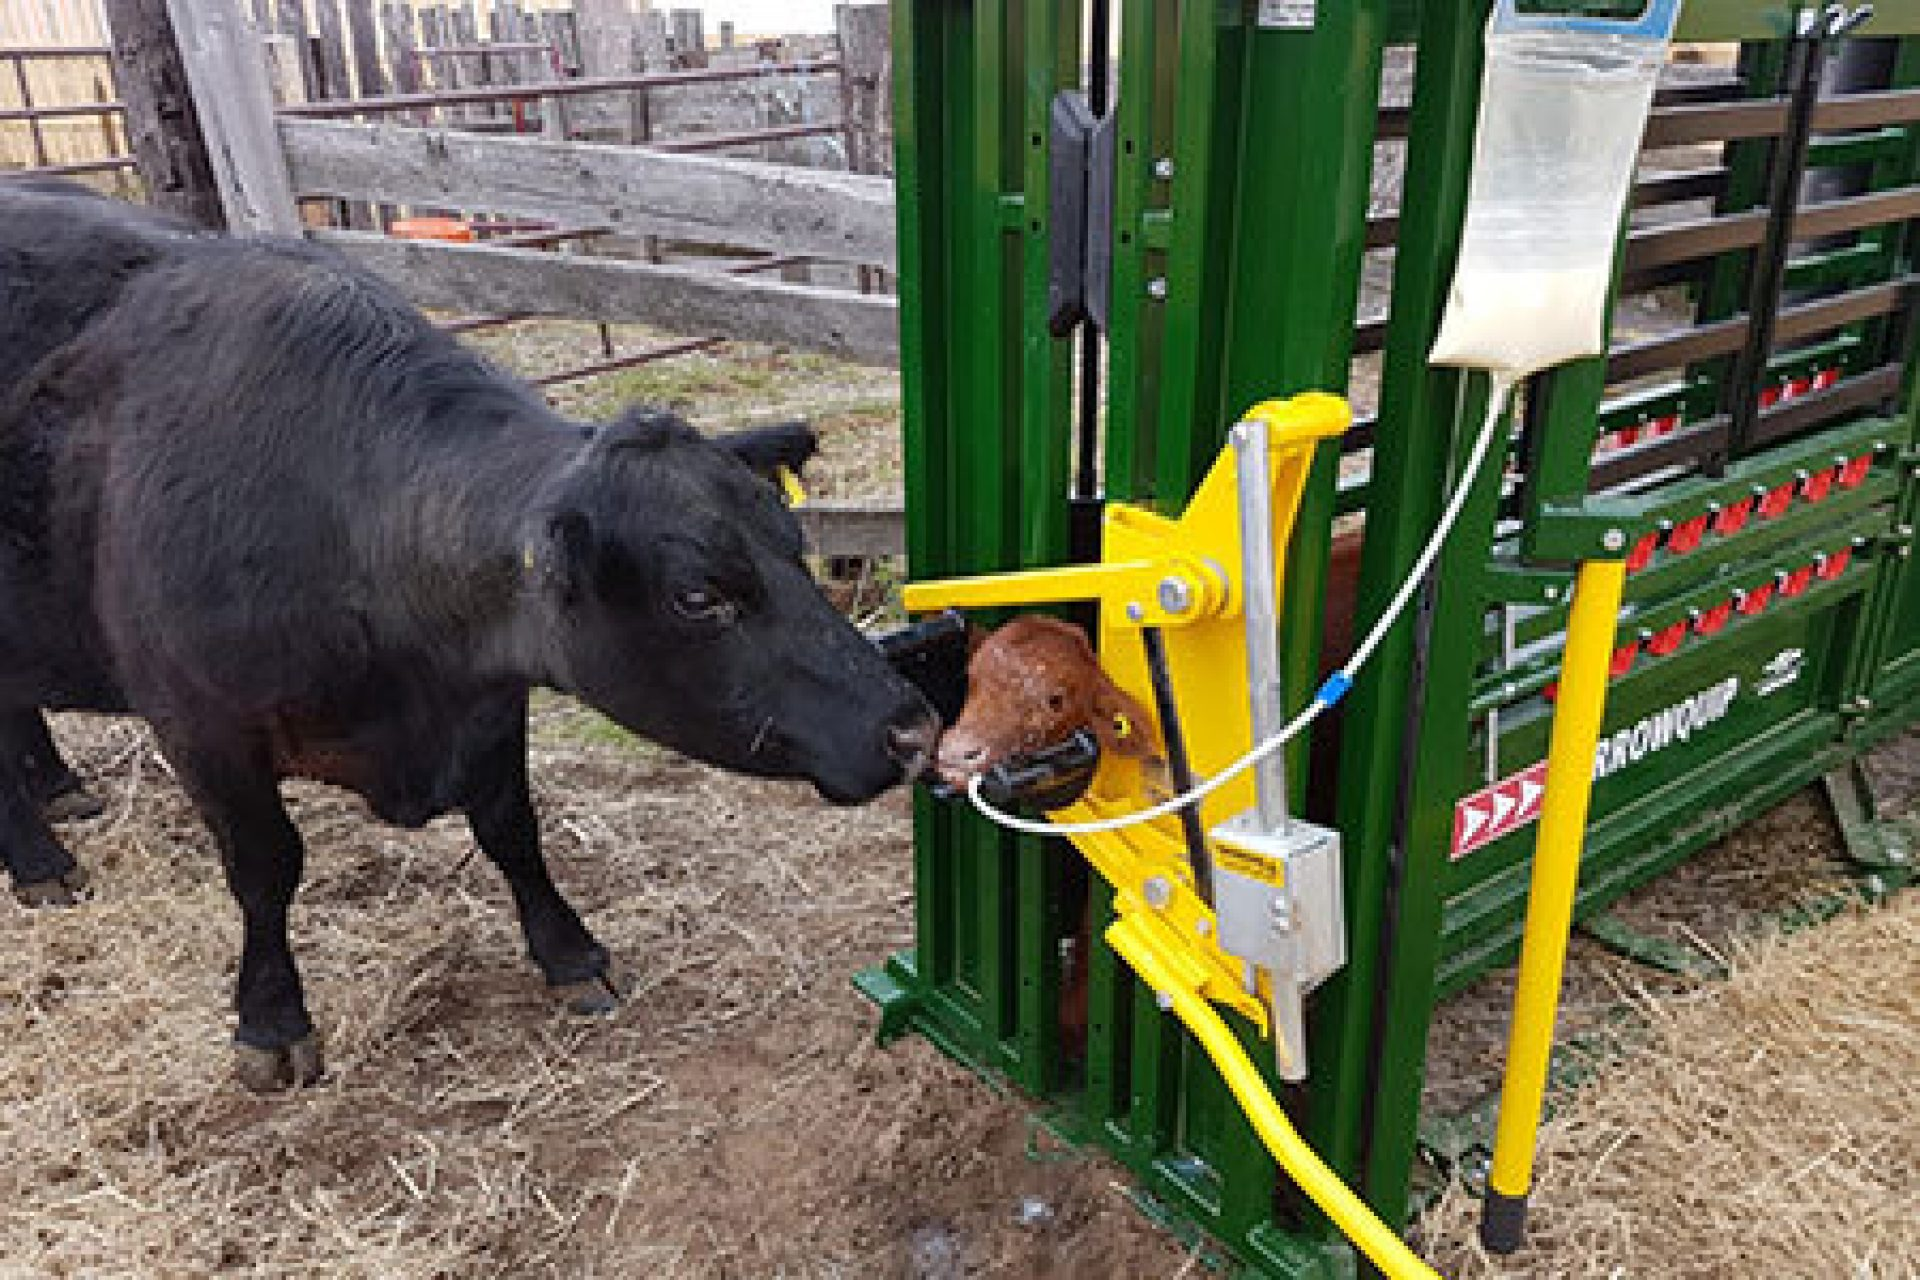 calf in chute drinking milk with mama cow outside